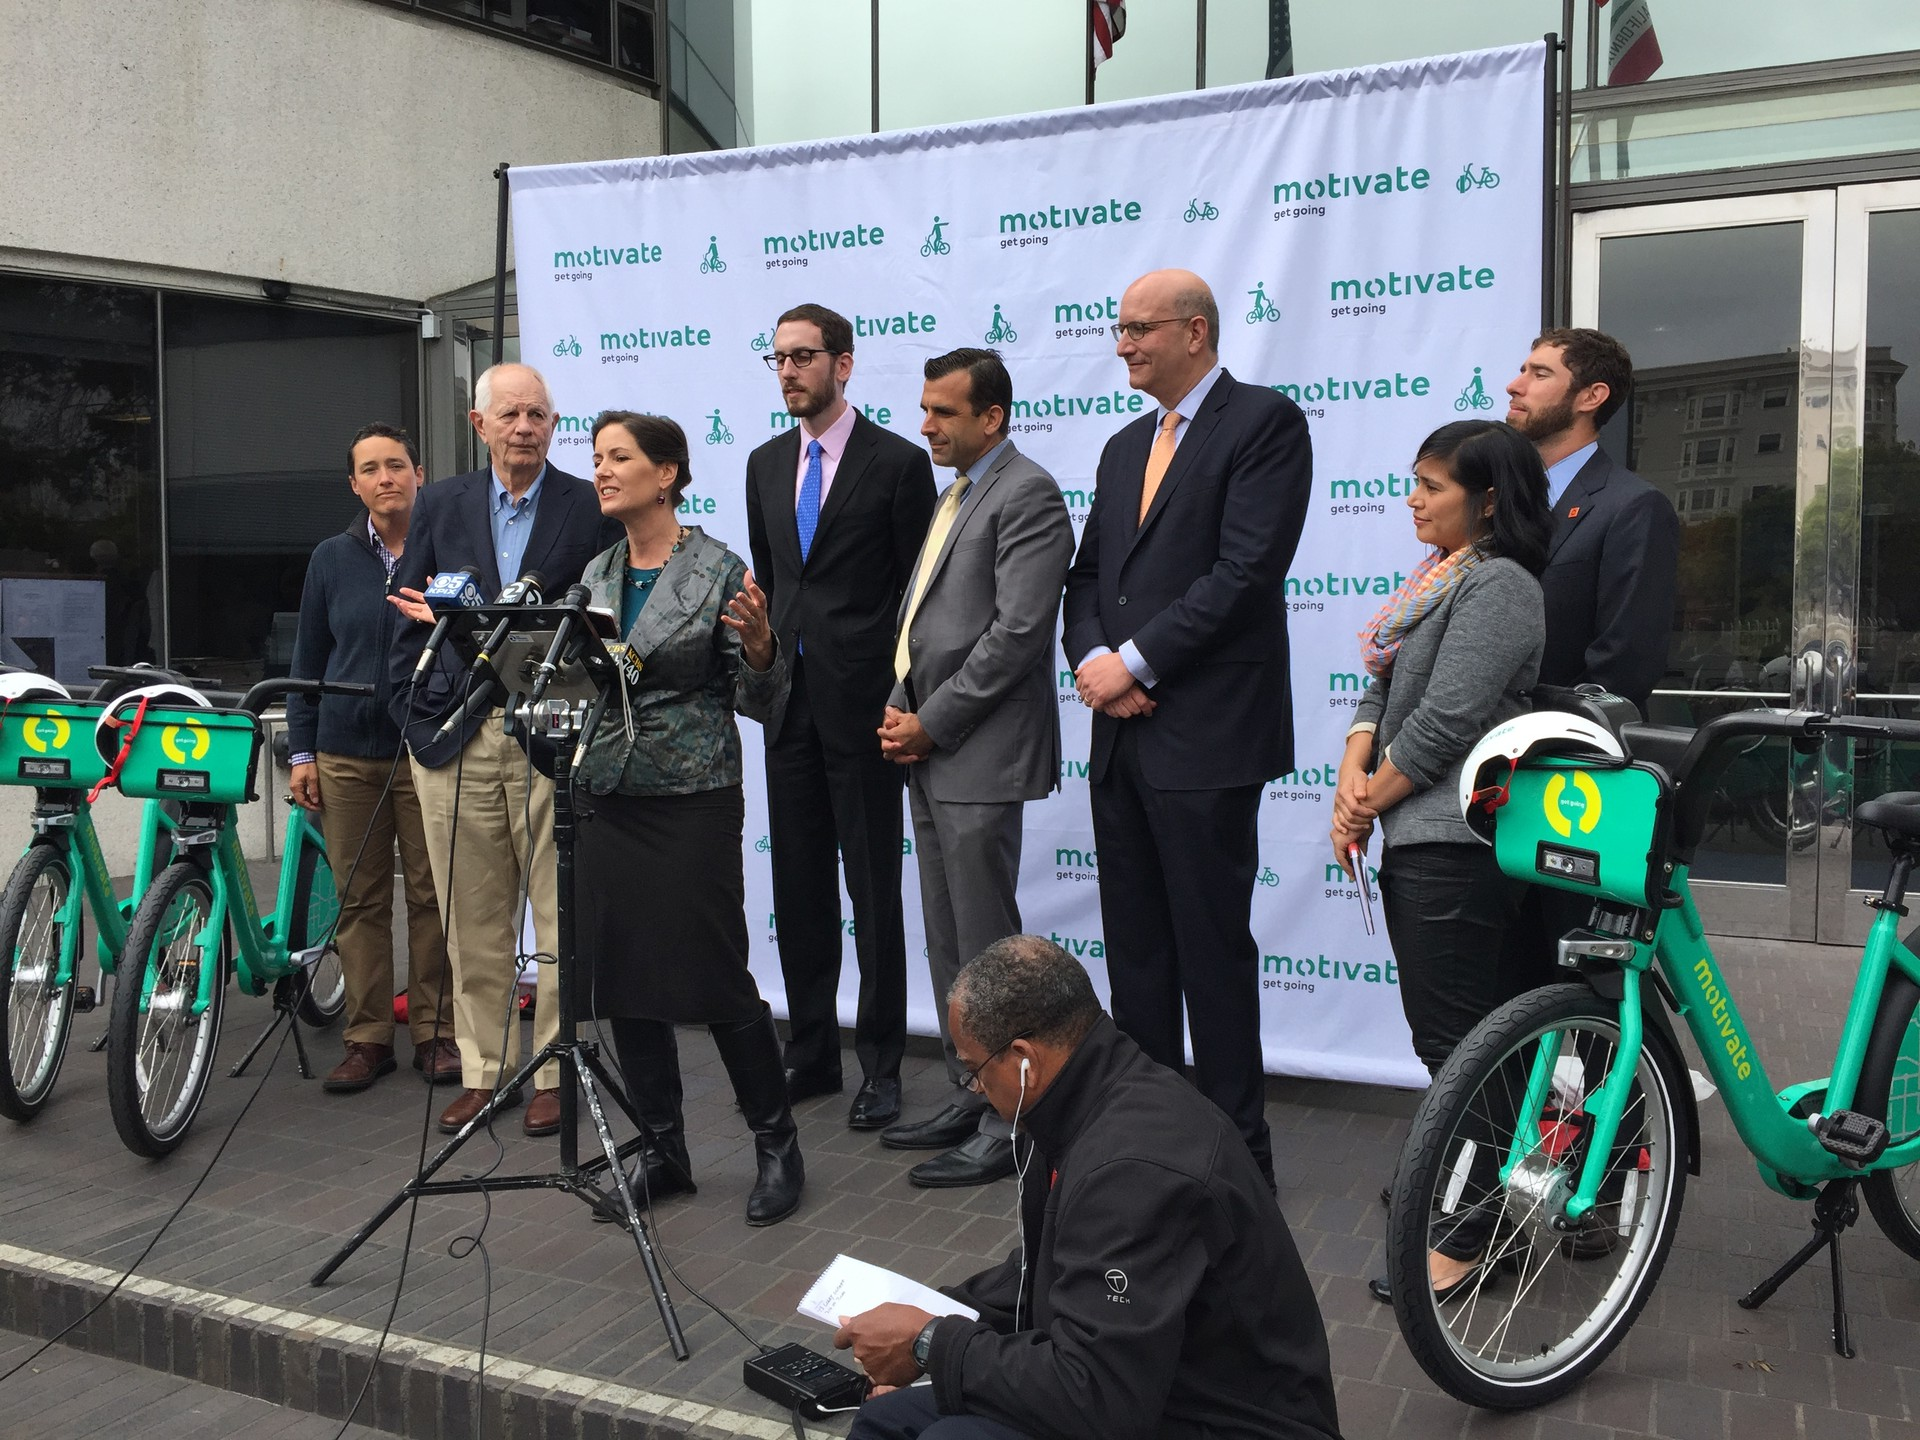 Oakland Mayor Libby Schaaf, surrounded by Bay Area city officials and advocates, at a press conference announcing the significant expansion of Bay Area Bike Share.